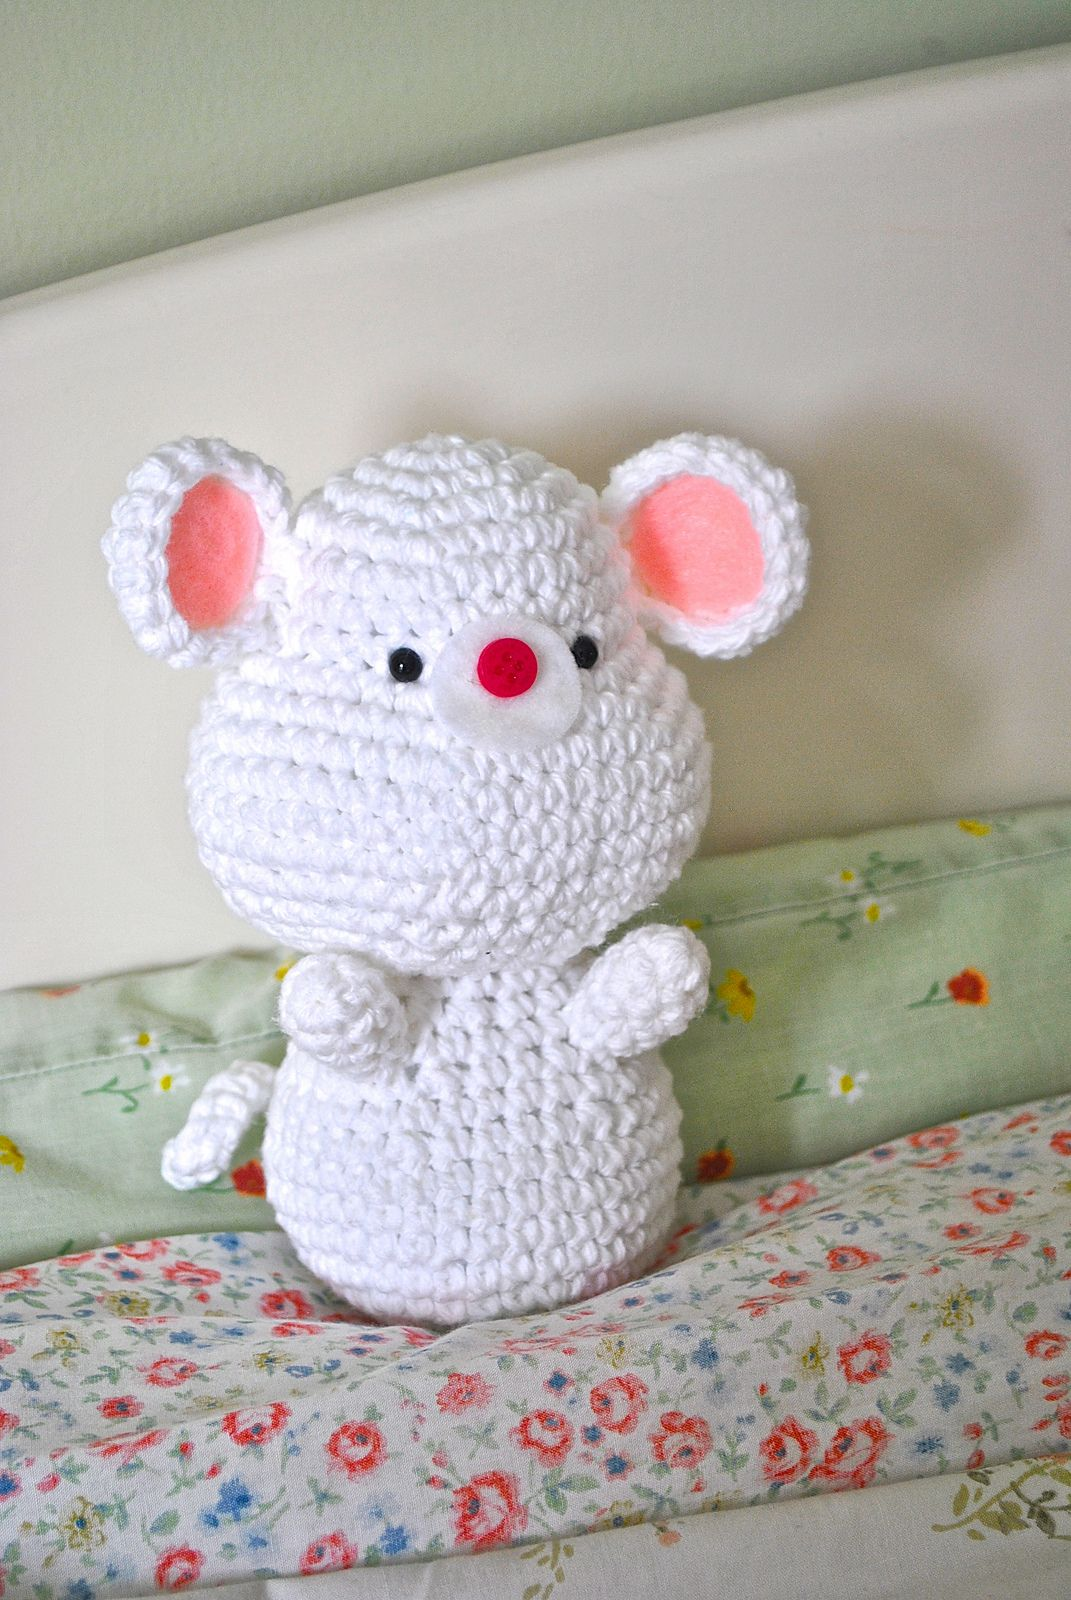 Baby mouse by amys gurumis free crochet pattern ravelry baby mouse by amys gurumis free crochet pattern ravelry bankloansurffo Image collections